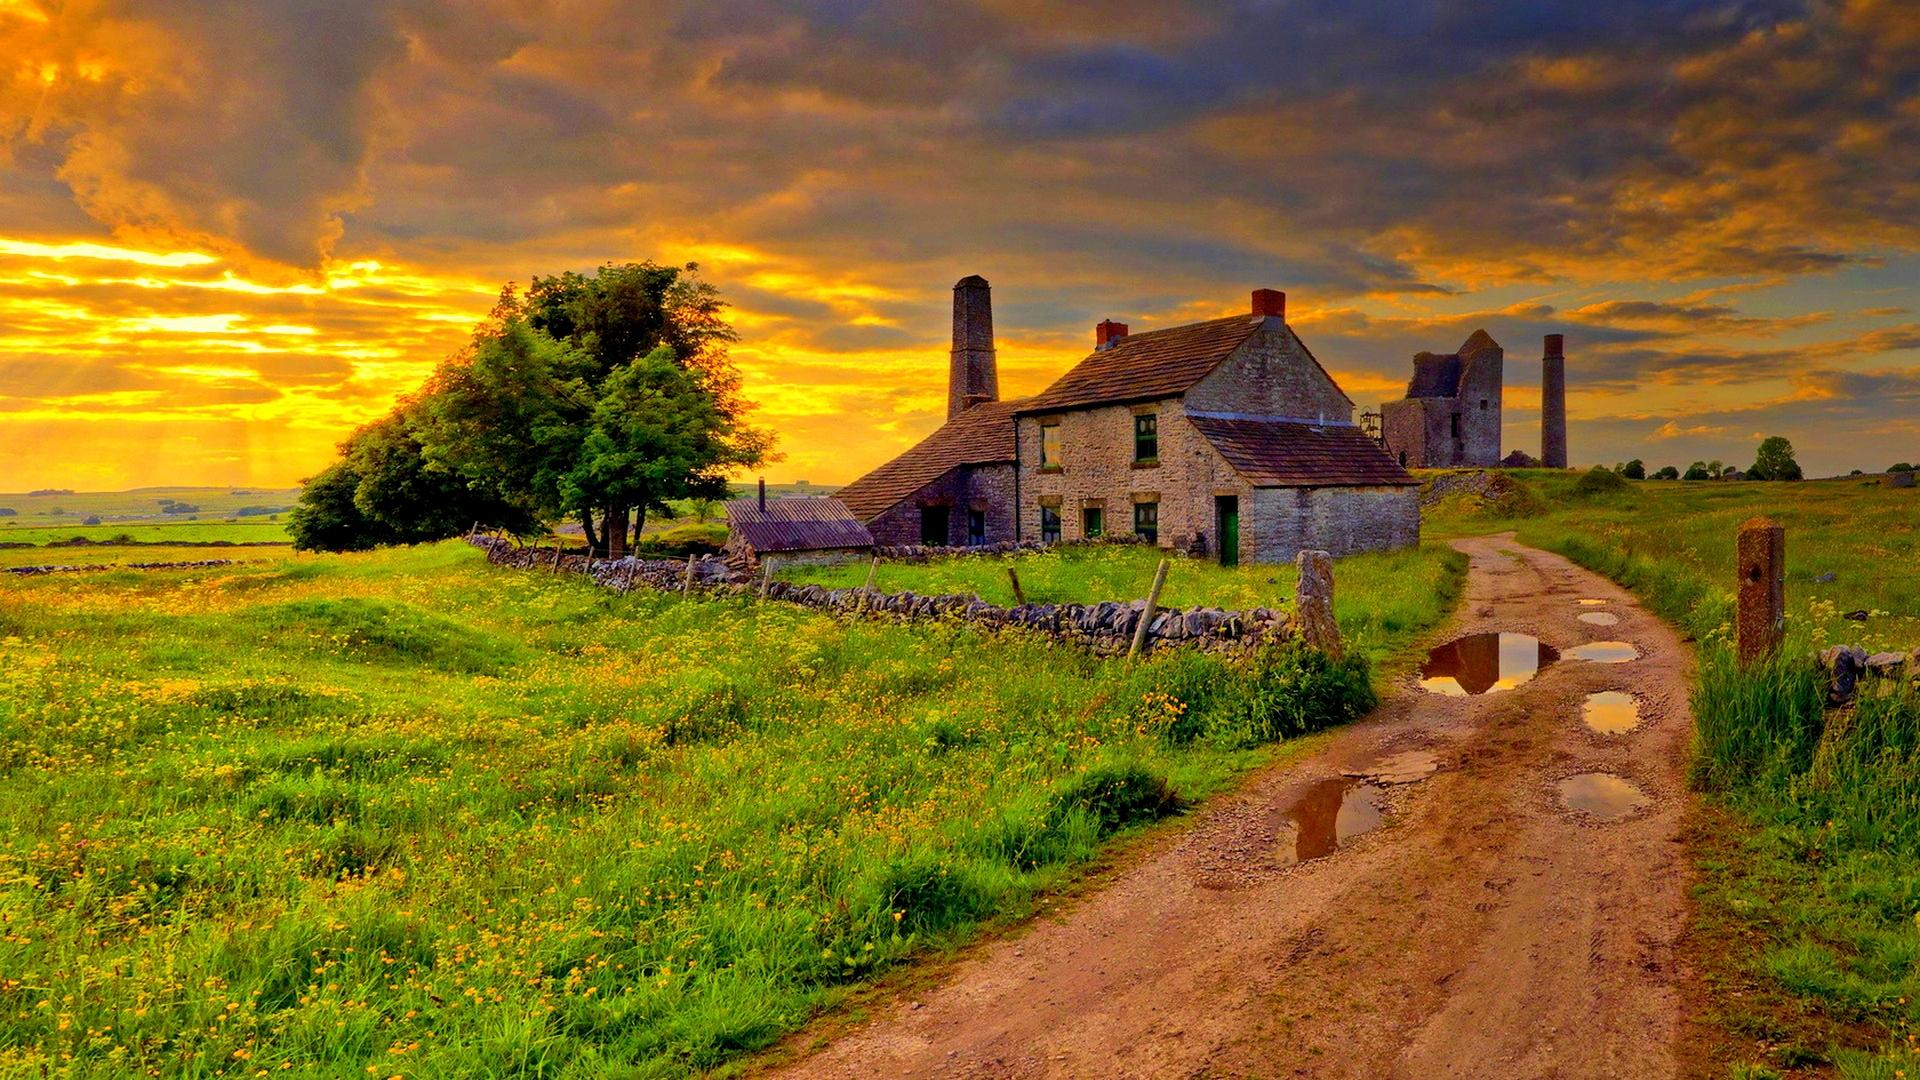 Old Farm After A Storm Hdr Hd Wallpaper Wallpaper List 1920x1080